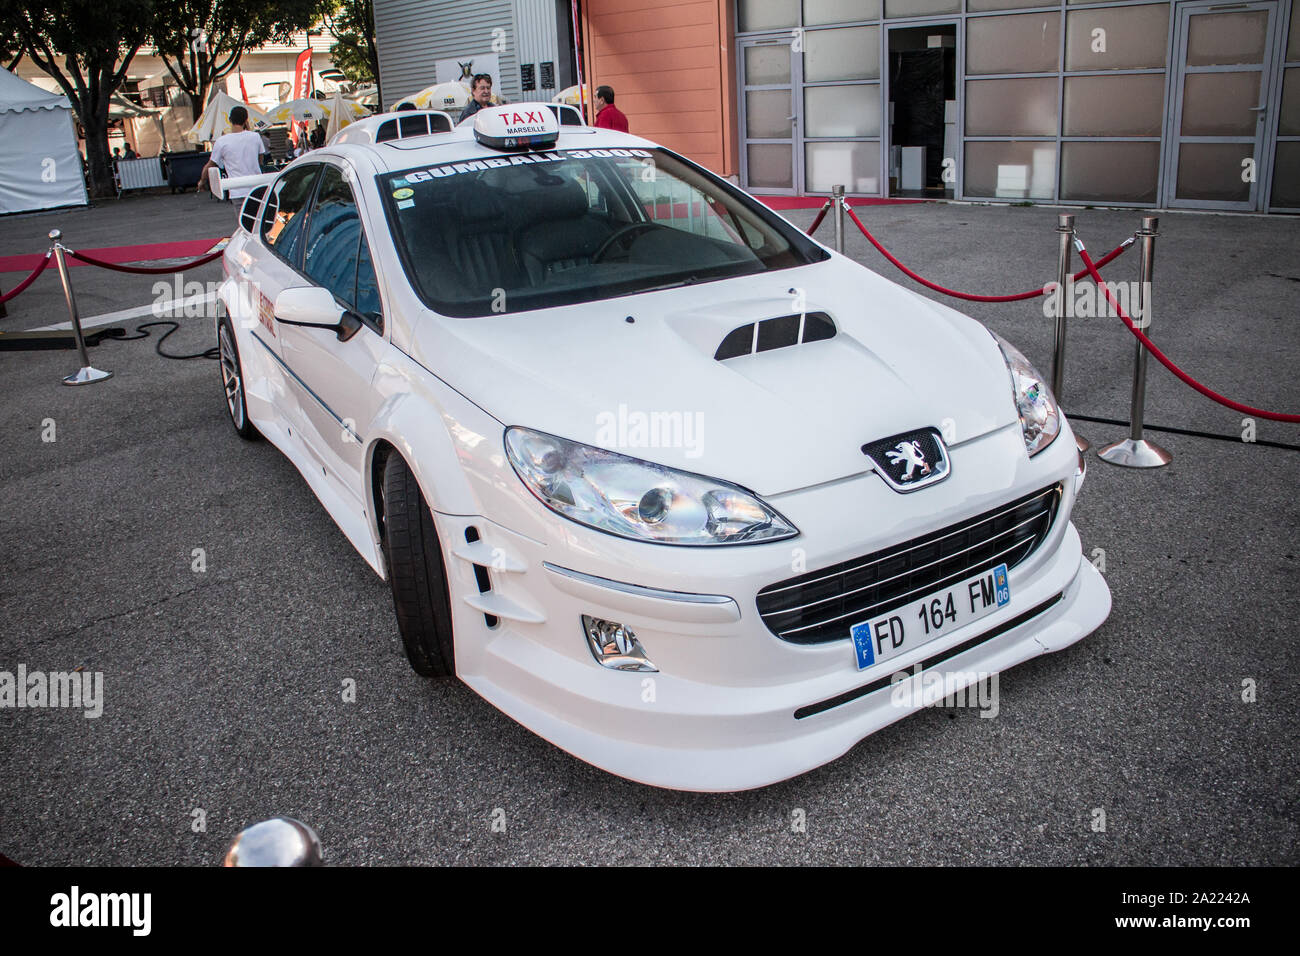 Foire Internationale De Marseille 2019 The Peugeot 407 Star Of The Films Taxi 1 2 Stock Photo Alamy